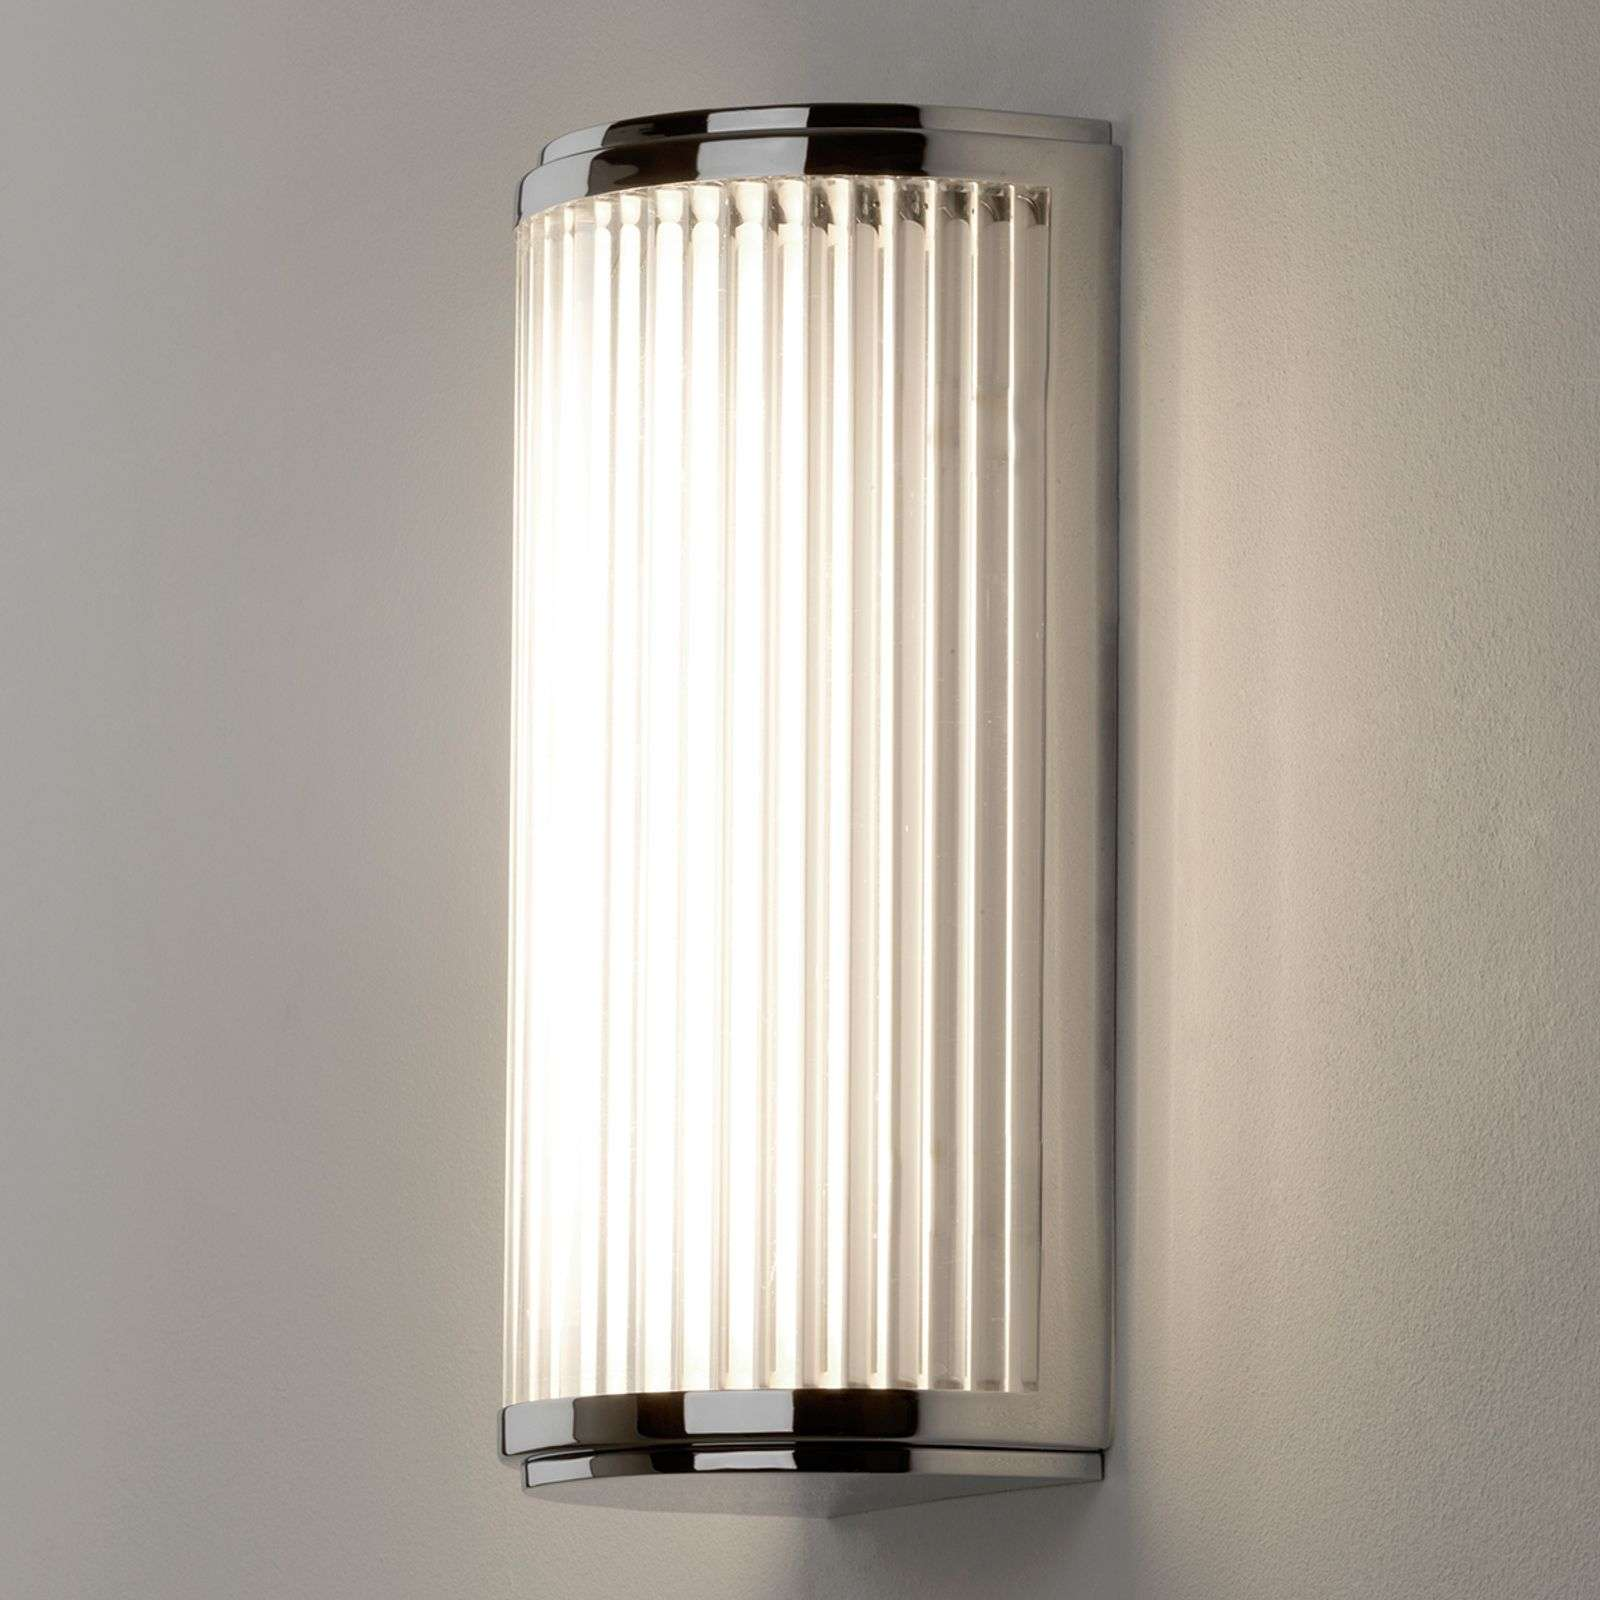 Essenziale applique LED scanalata Versailles